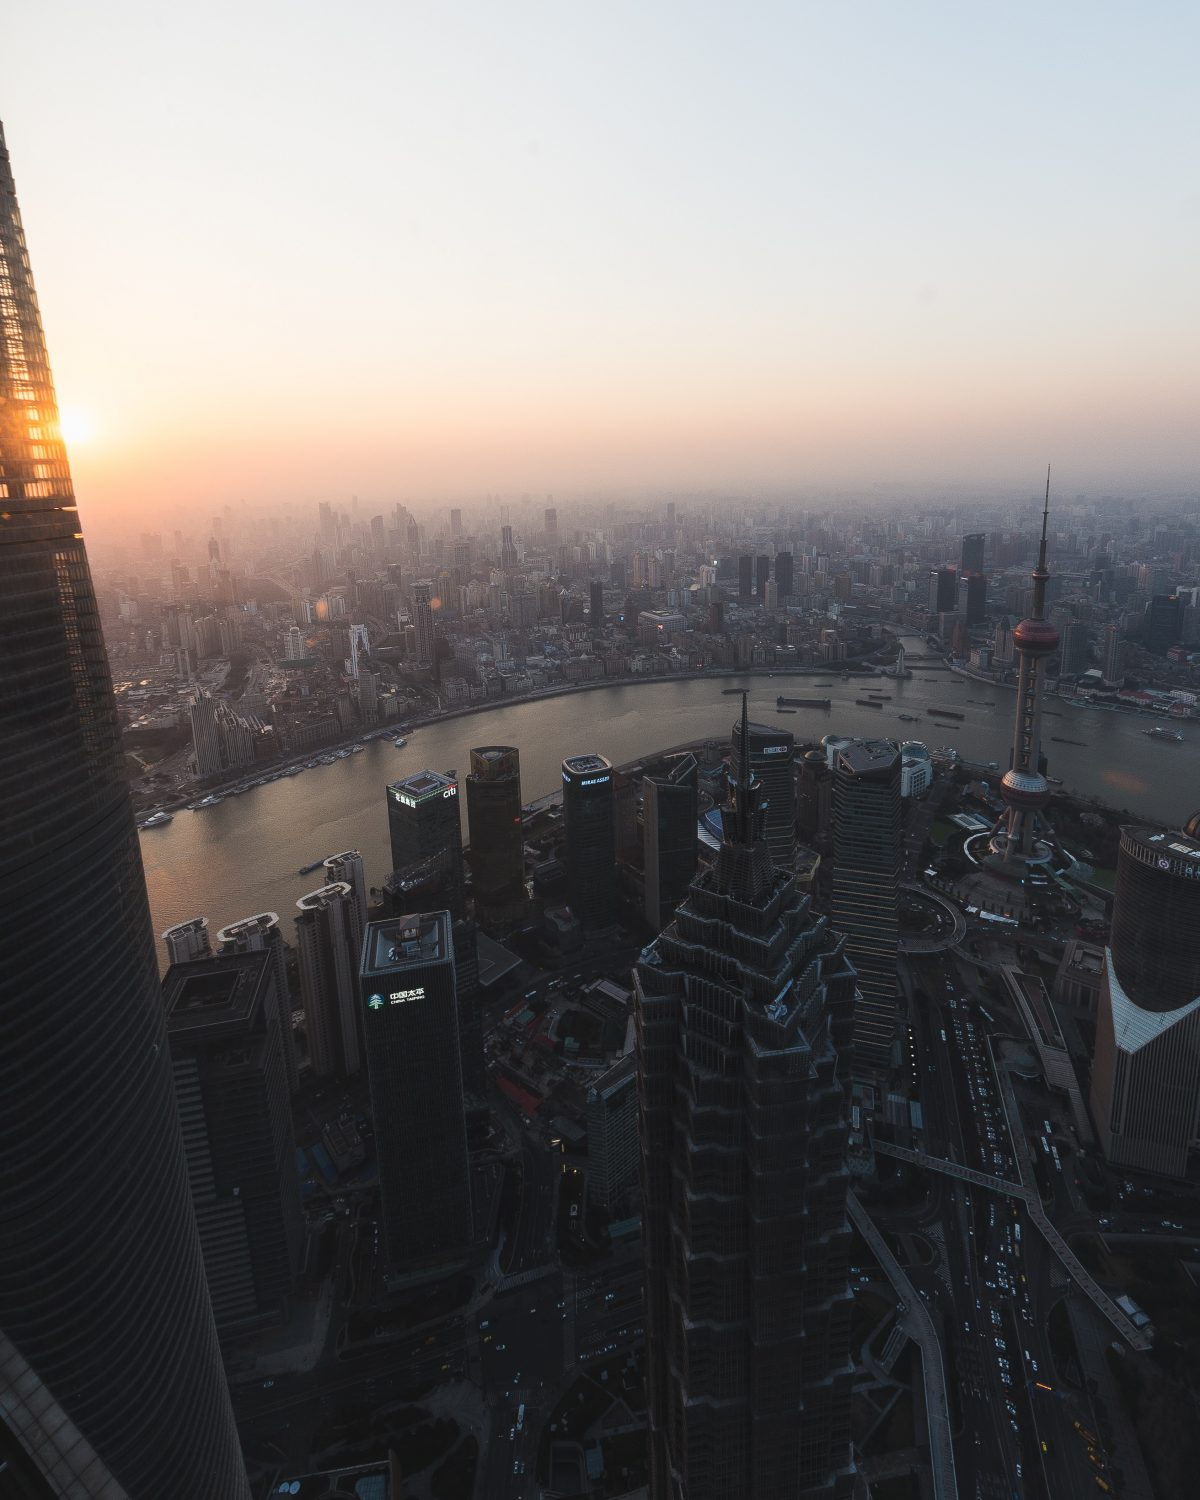 Panoramic view of Shanghai city from the Shanghai World Financial Centre in the evening sun